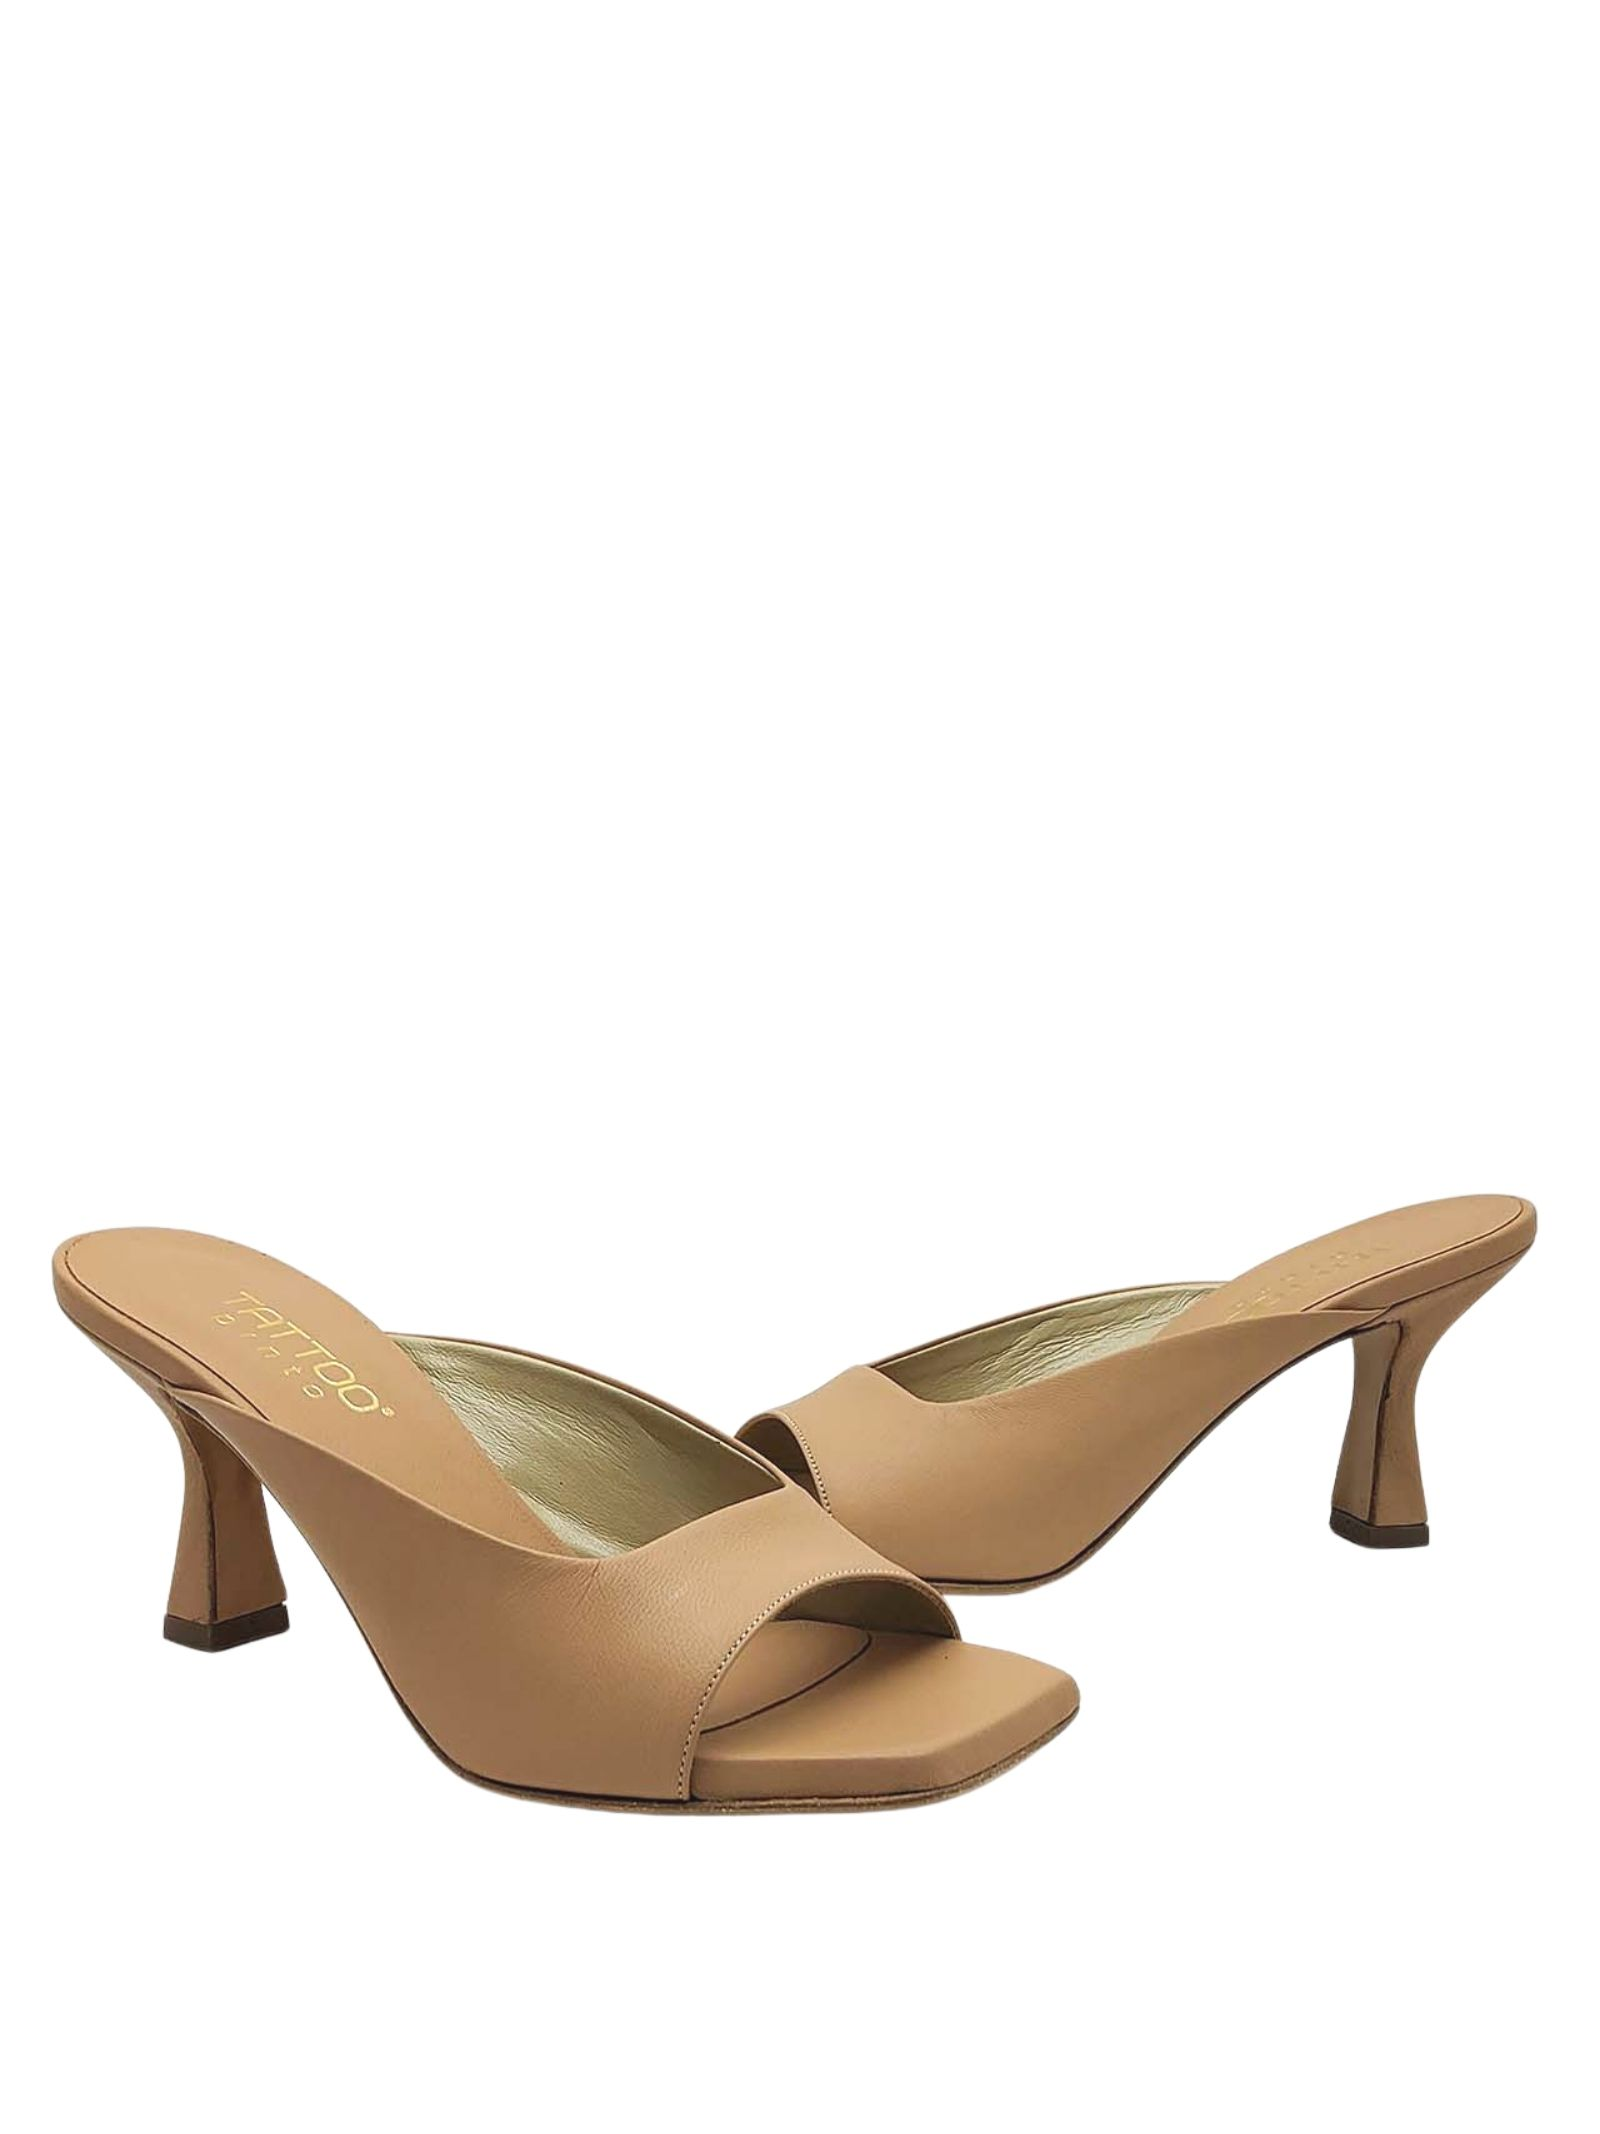 Women's Shoes Barefoot Sandal in Nude Leather with Heel Tattoo   Sandals   7027300